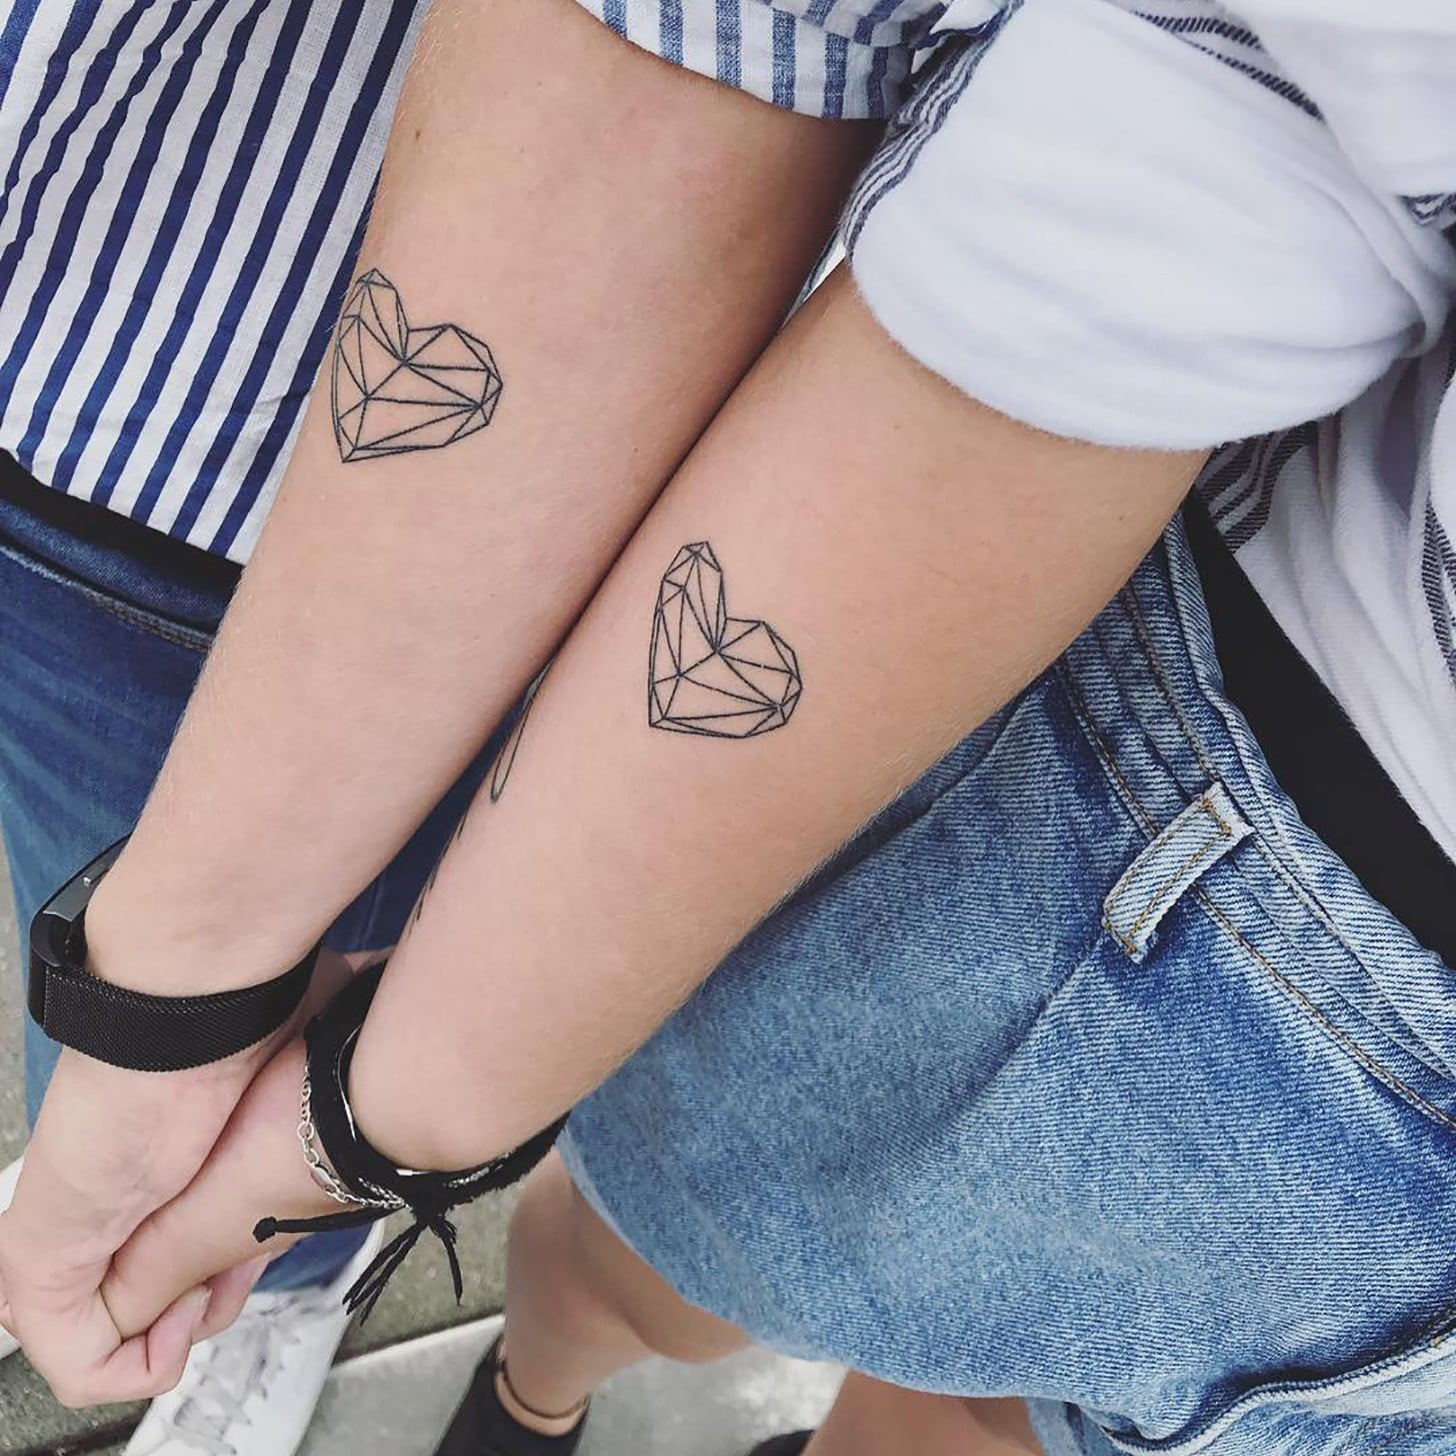 da8ee56c2e1a9 Matching Tattoo Ideas | POPSUGAR Love & Sex